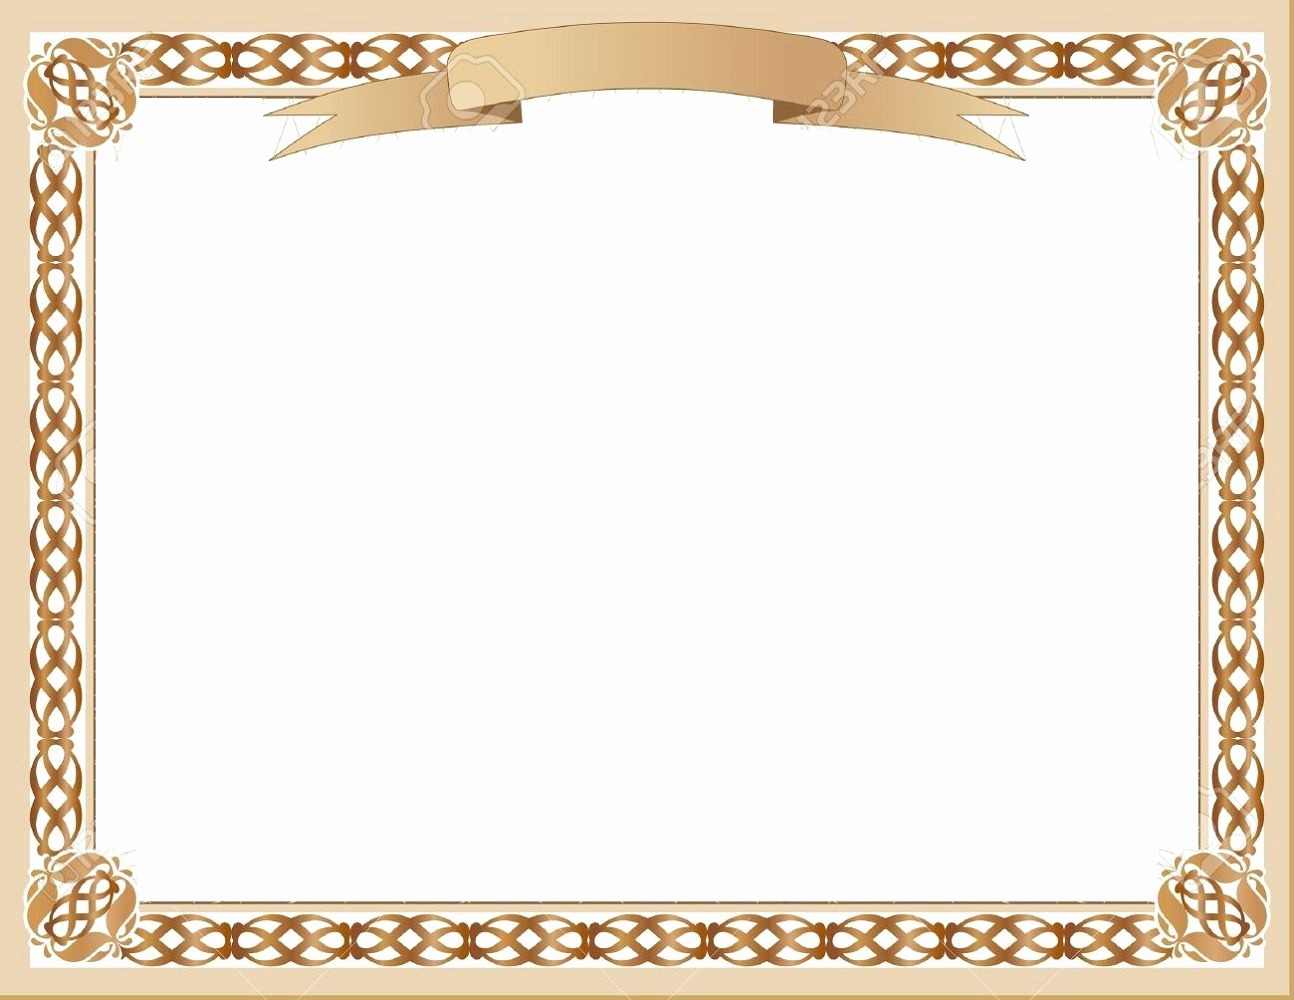 Certificate Background Design Free Download Unique Blank Certificate Designs Template Border Design